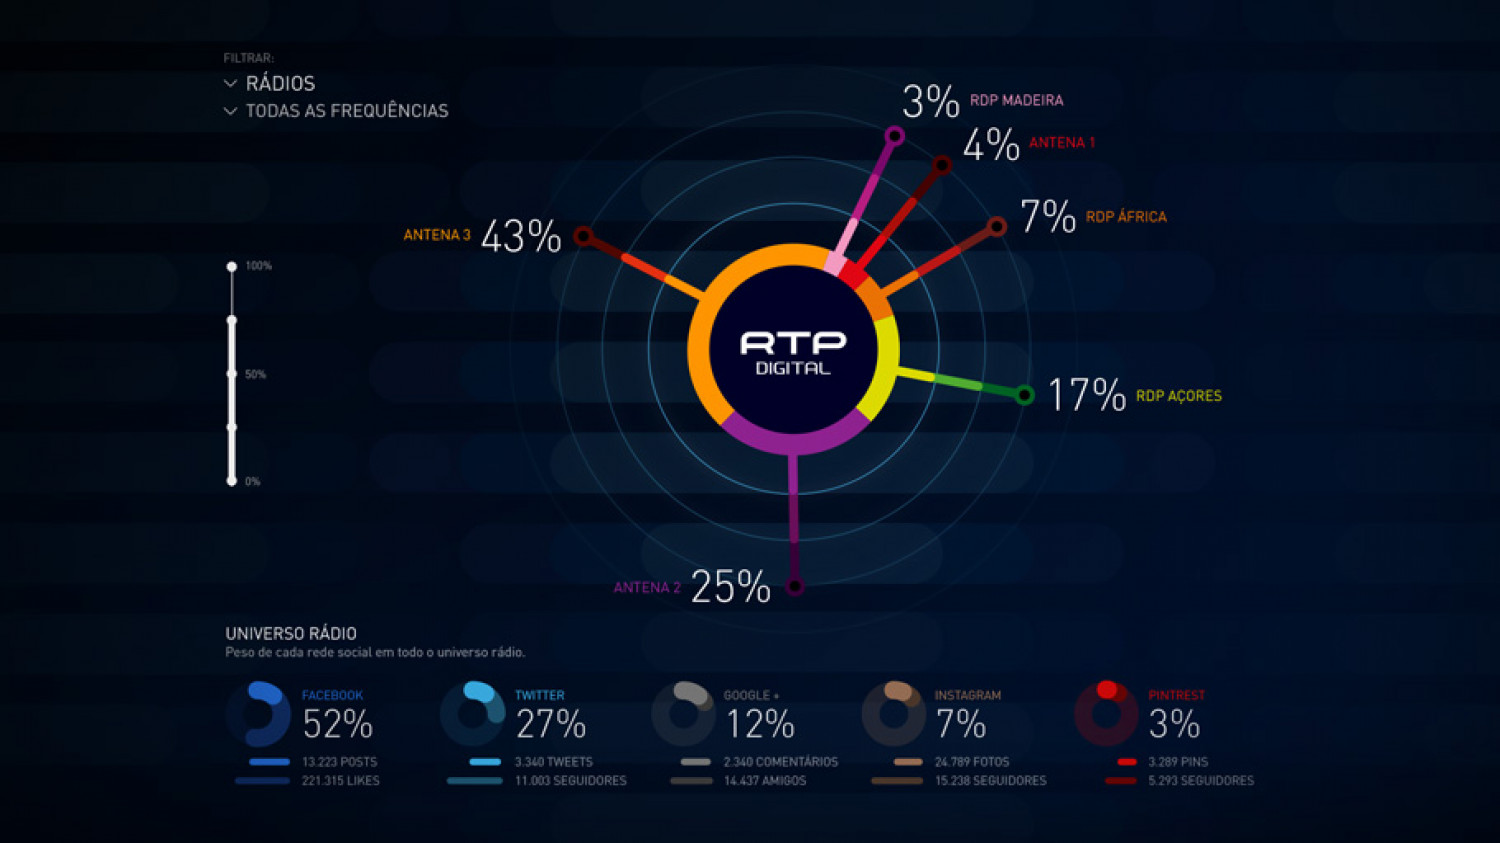 RTP Live: Radio Overview Infographic